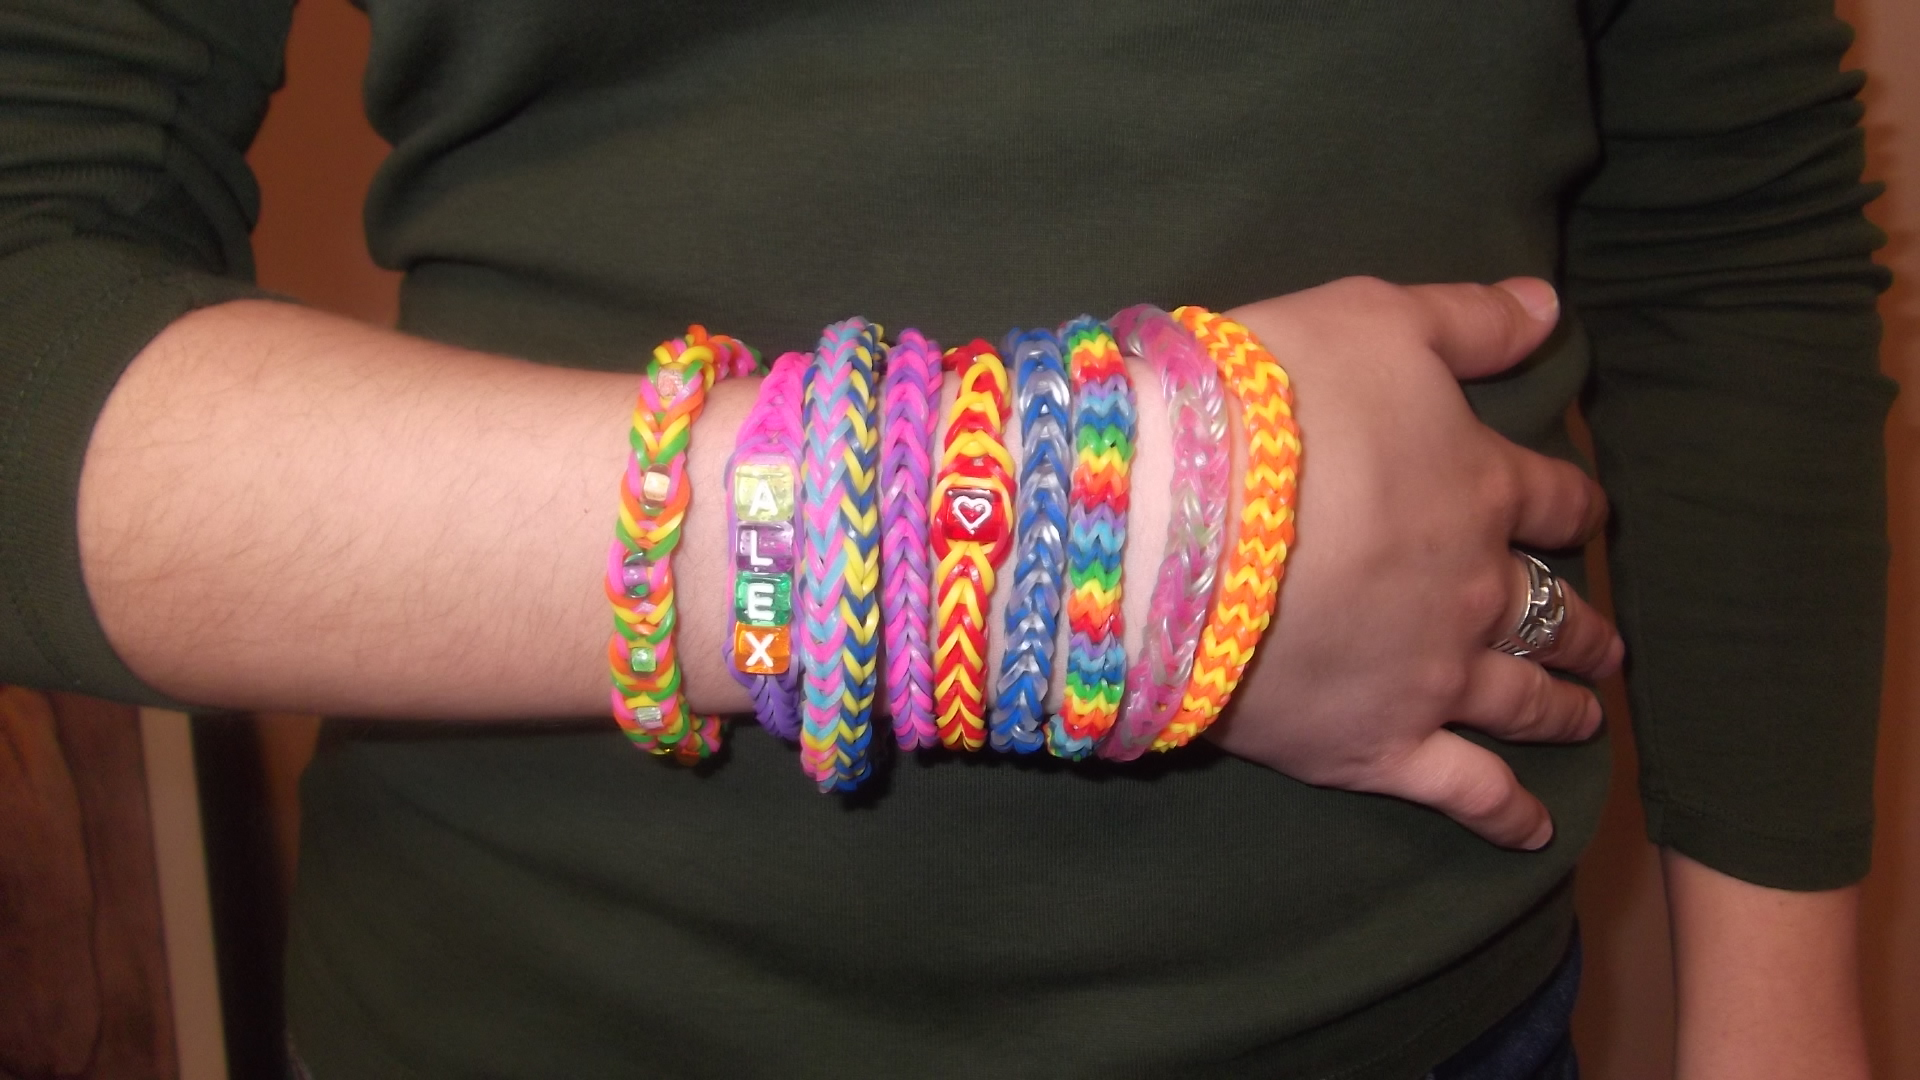 Make French Ship Bracelets With The French Knitter